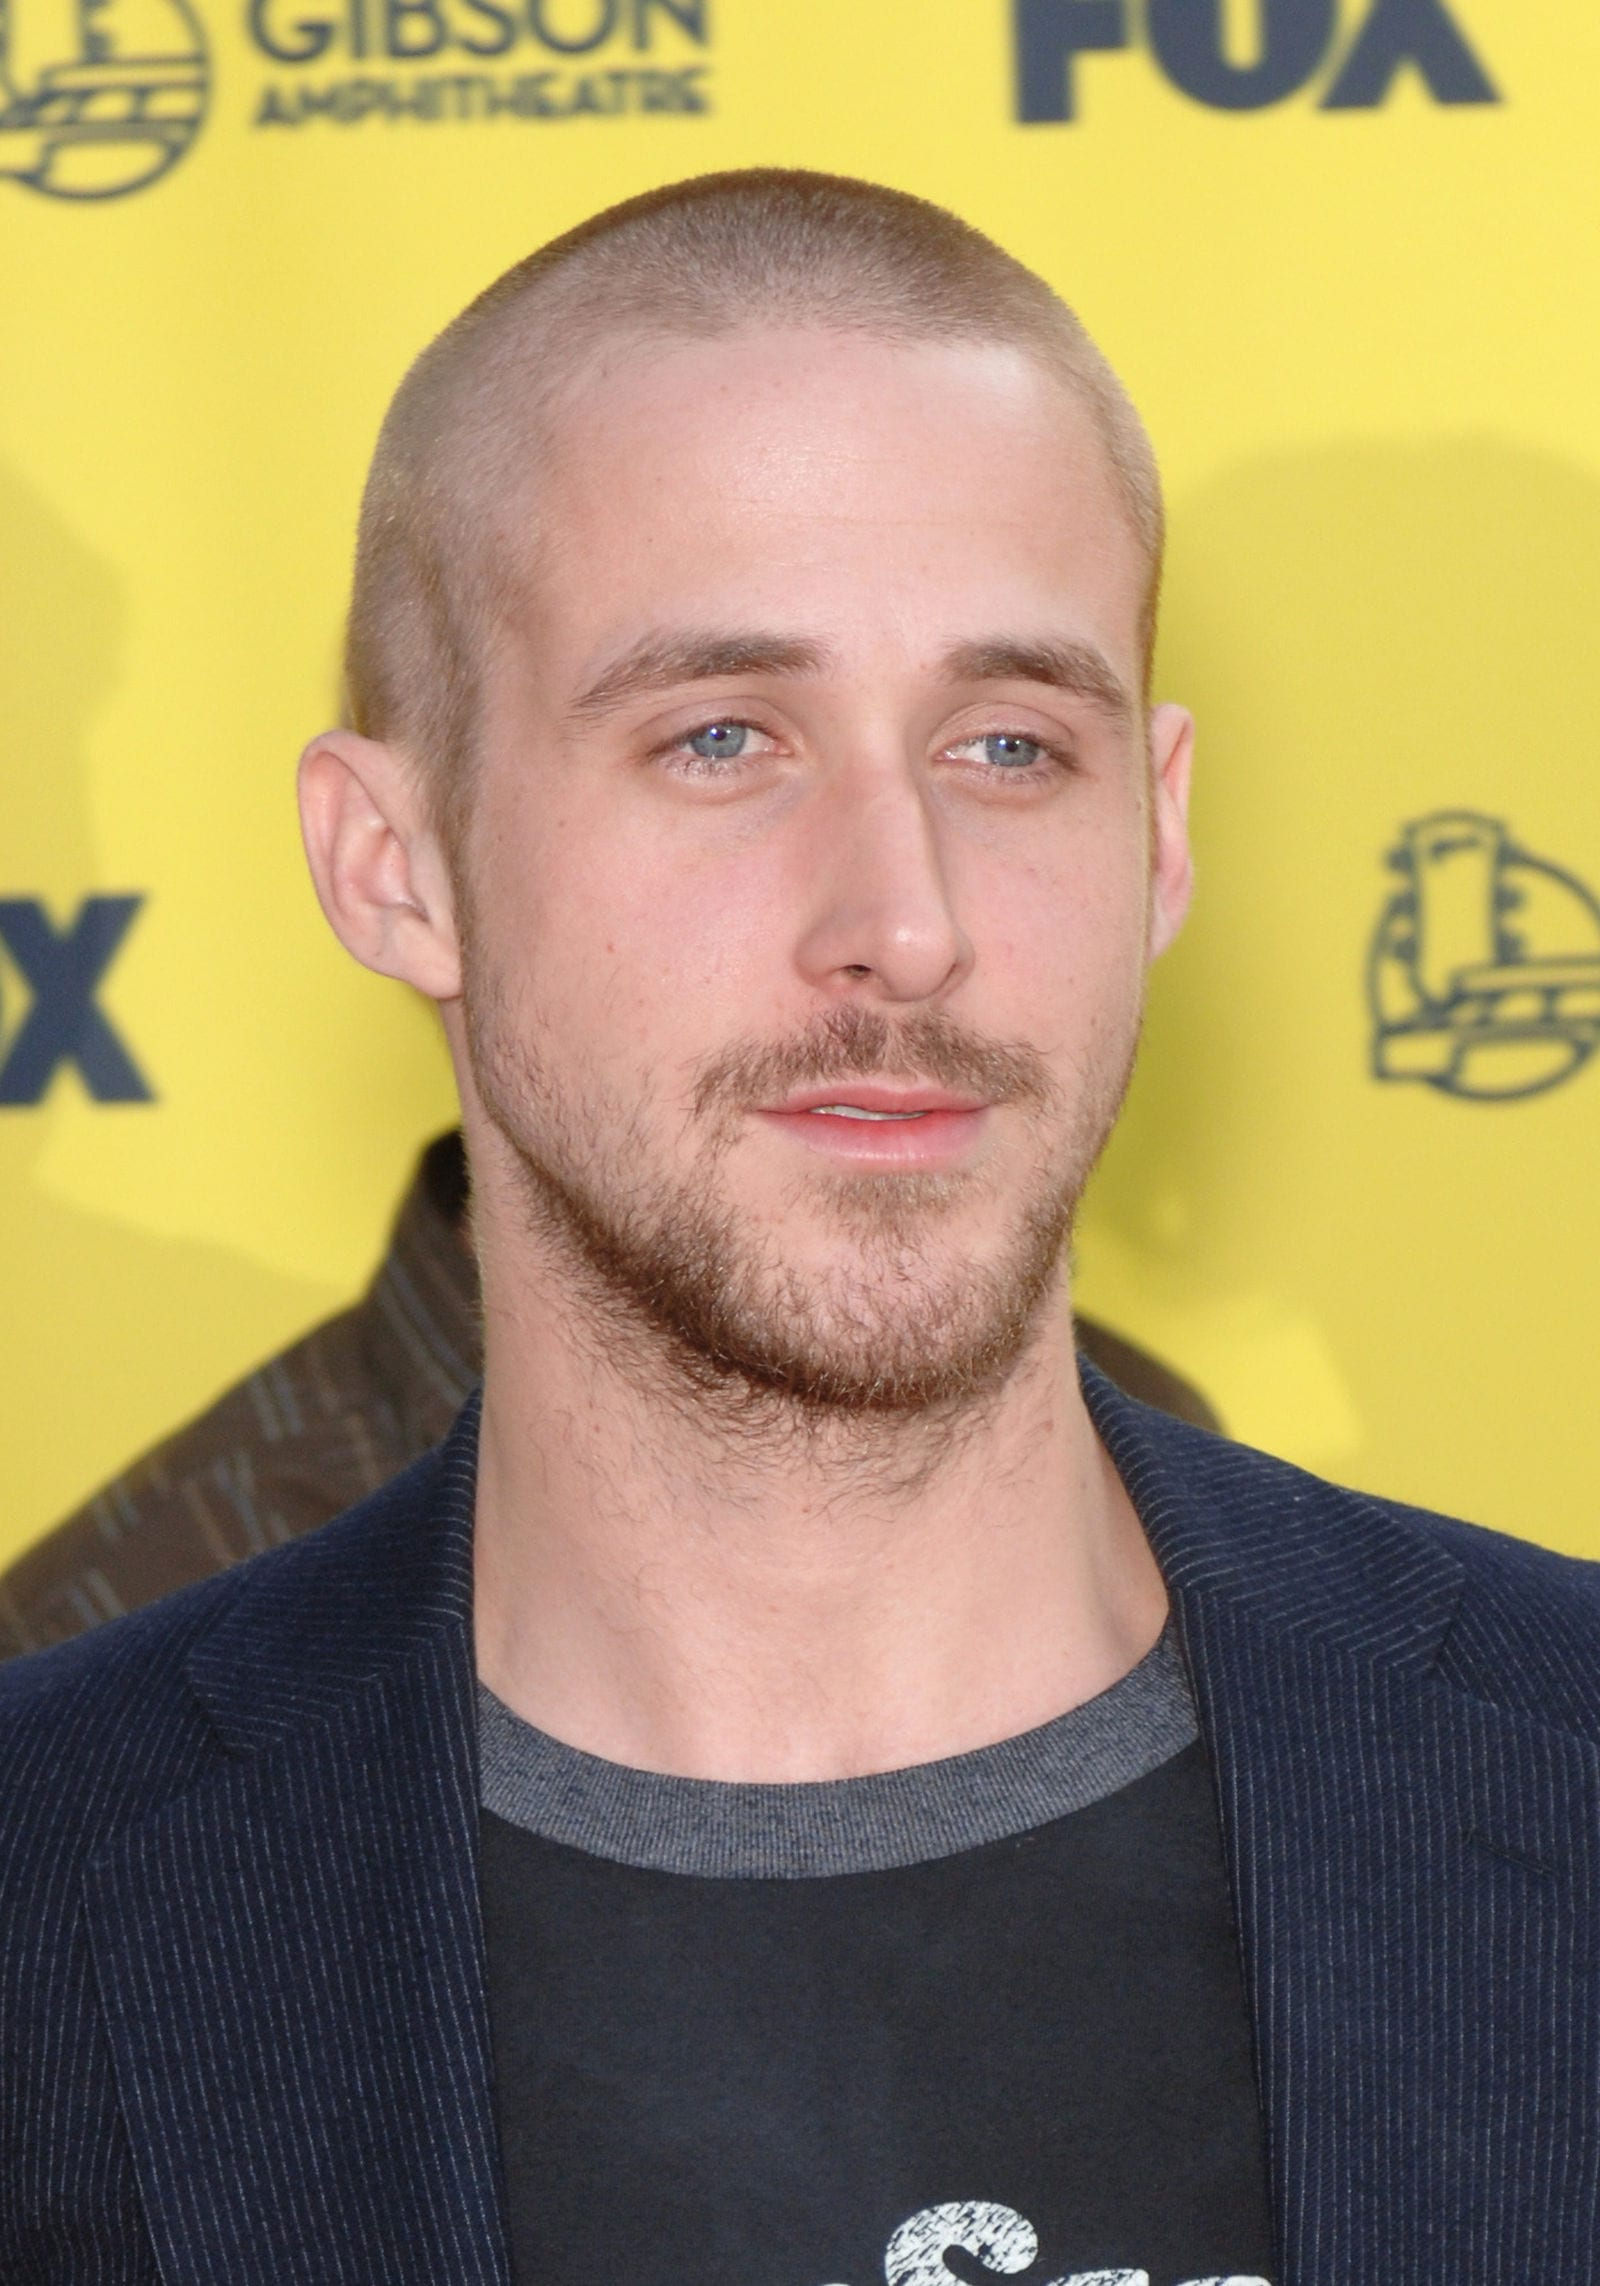 Ryan Gosling Clean Buzzcut August 2005